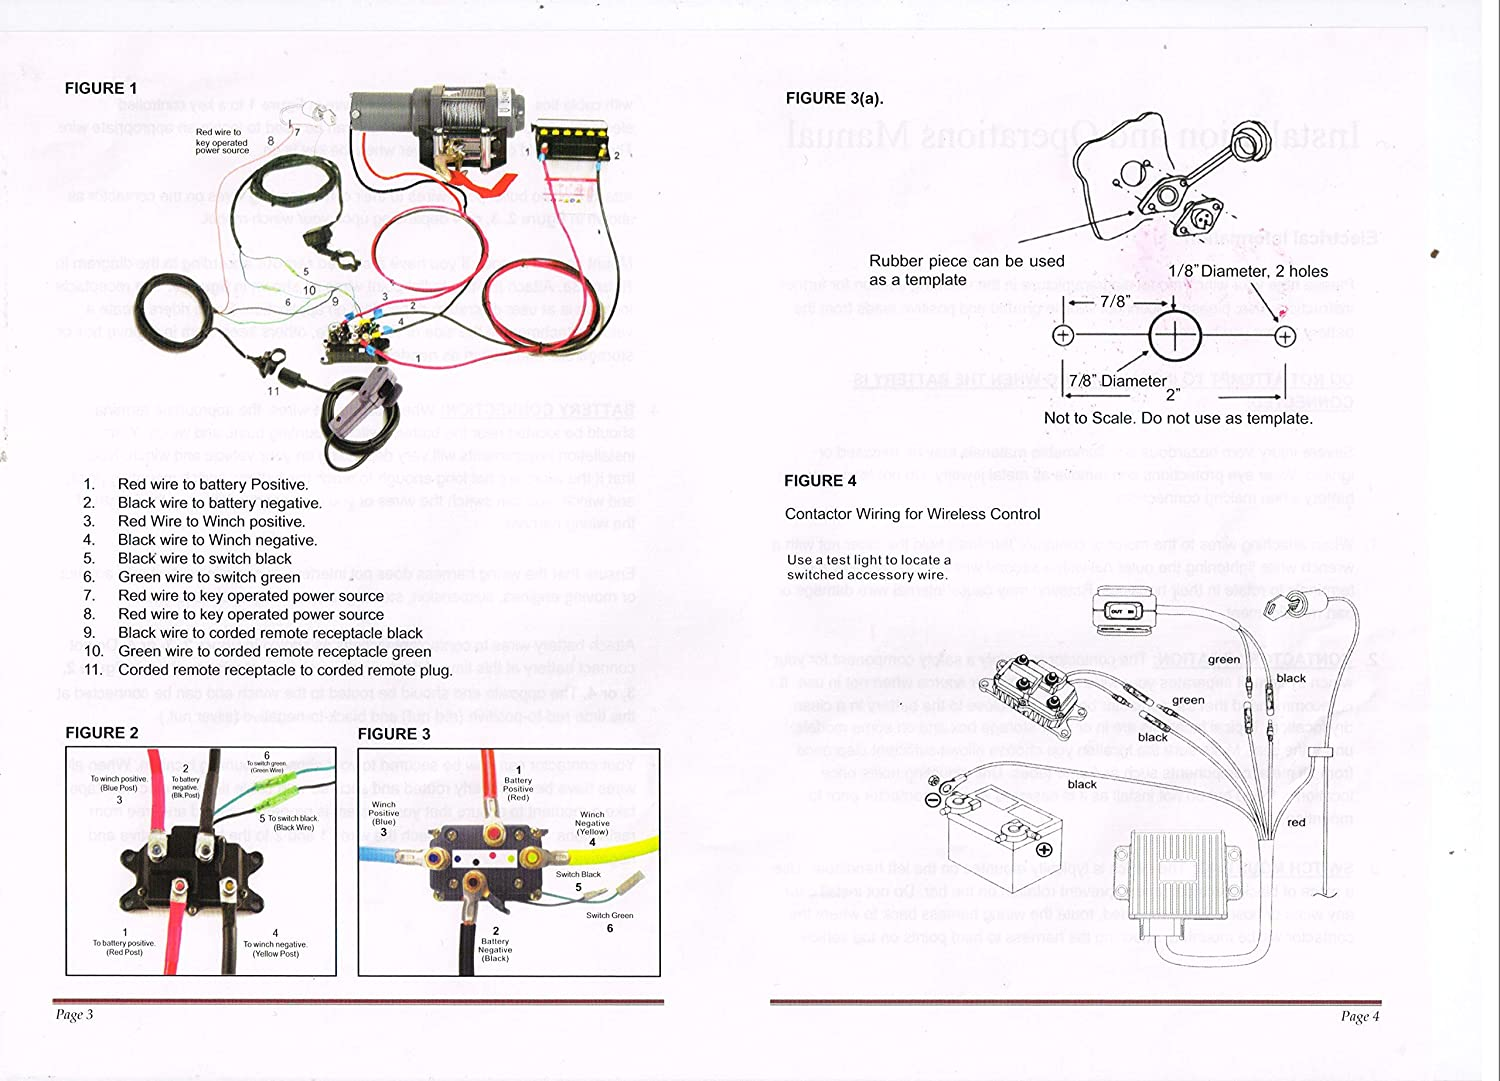 New WINCH SOLENOID 12V HEAVY DUTY UPGRADE ALBRIGHT EQUIV on dc motor forward reverse wiring diagram, champion winch wiring diagram, switch wiring diagram, trailer hitch wiring diagram, badland winch solenoid diagram, speedometer wiring diagram, fan motor wiring diagram, 3 wire wiring diagram, badland wireless remote wiring diagram, solenoid switch diagram, overhead crane electrical wiring diagram, 12 volt winch wiring diagram, electric winch wiring diagram, desert dynamics winch wiring diagram, 4 wheeler winch wiring diagram, trailer light plug wiring diagram, atv winch wiring diagram, venom winch wiring diagram, ramsey rep 8000 solenoid diagram, winch motor wiring diagram,